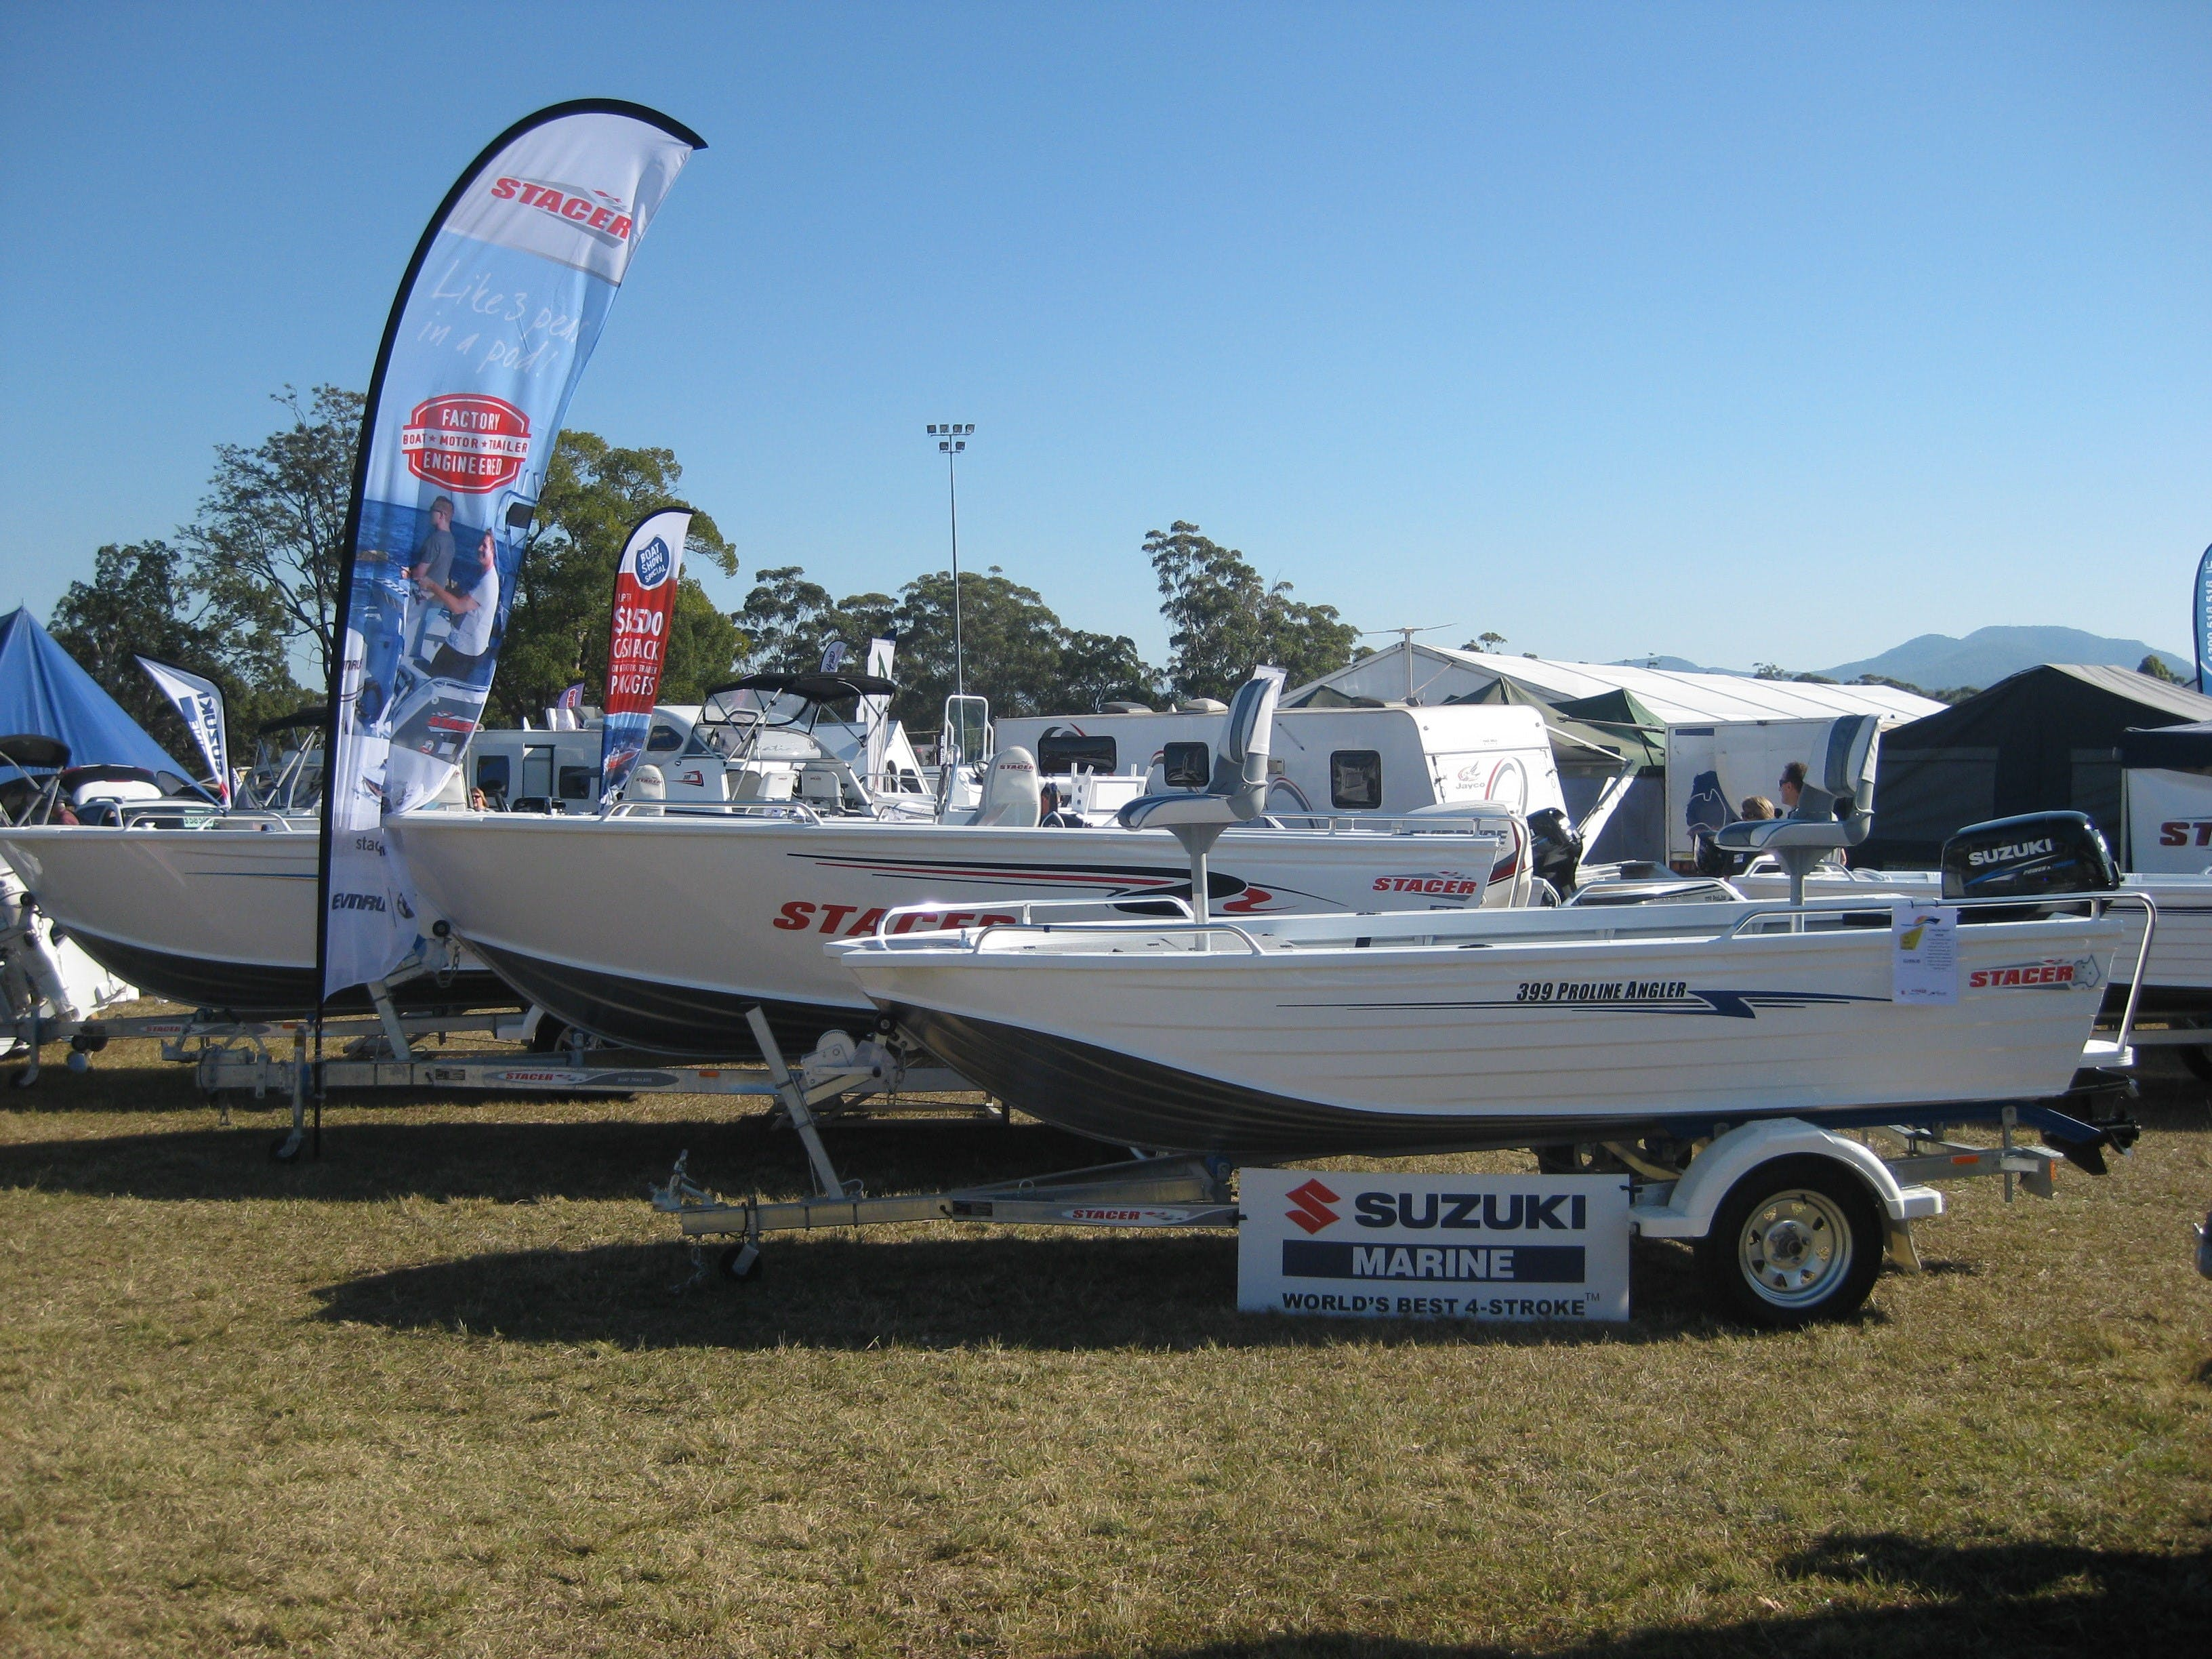 Mid North Coast Caravan Camping 4WD Fish and Boat Show - Lightning Ridge Tourism